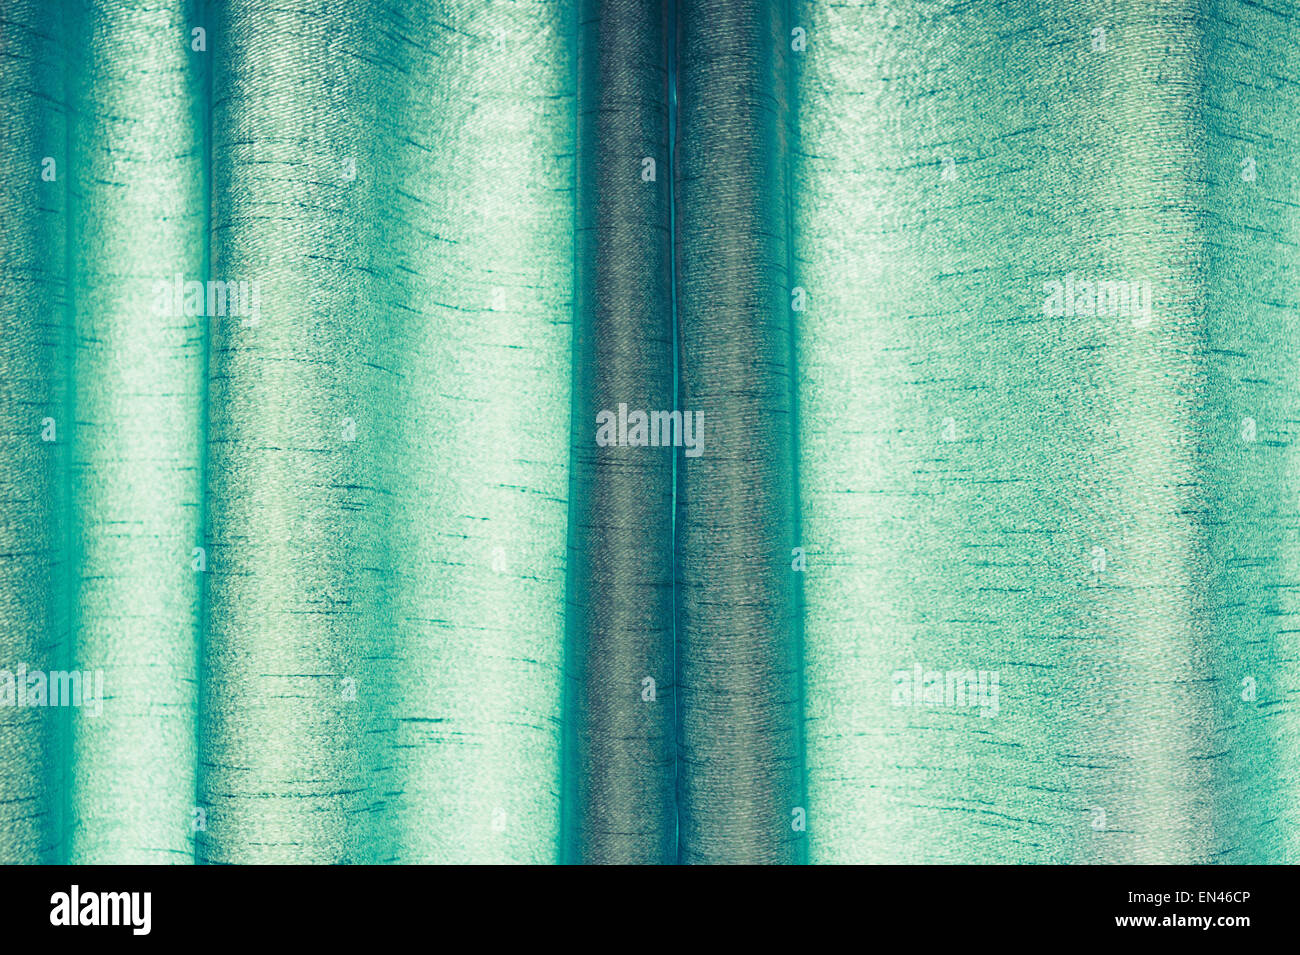 Part of a drawn pair of green curtains made from synthetic material Stock Photo